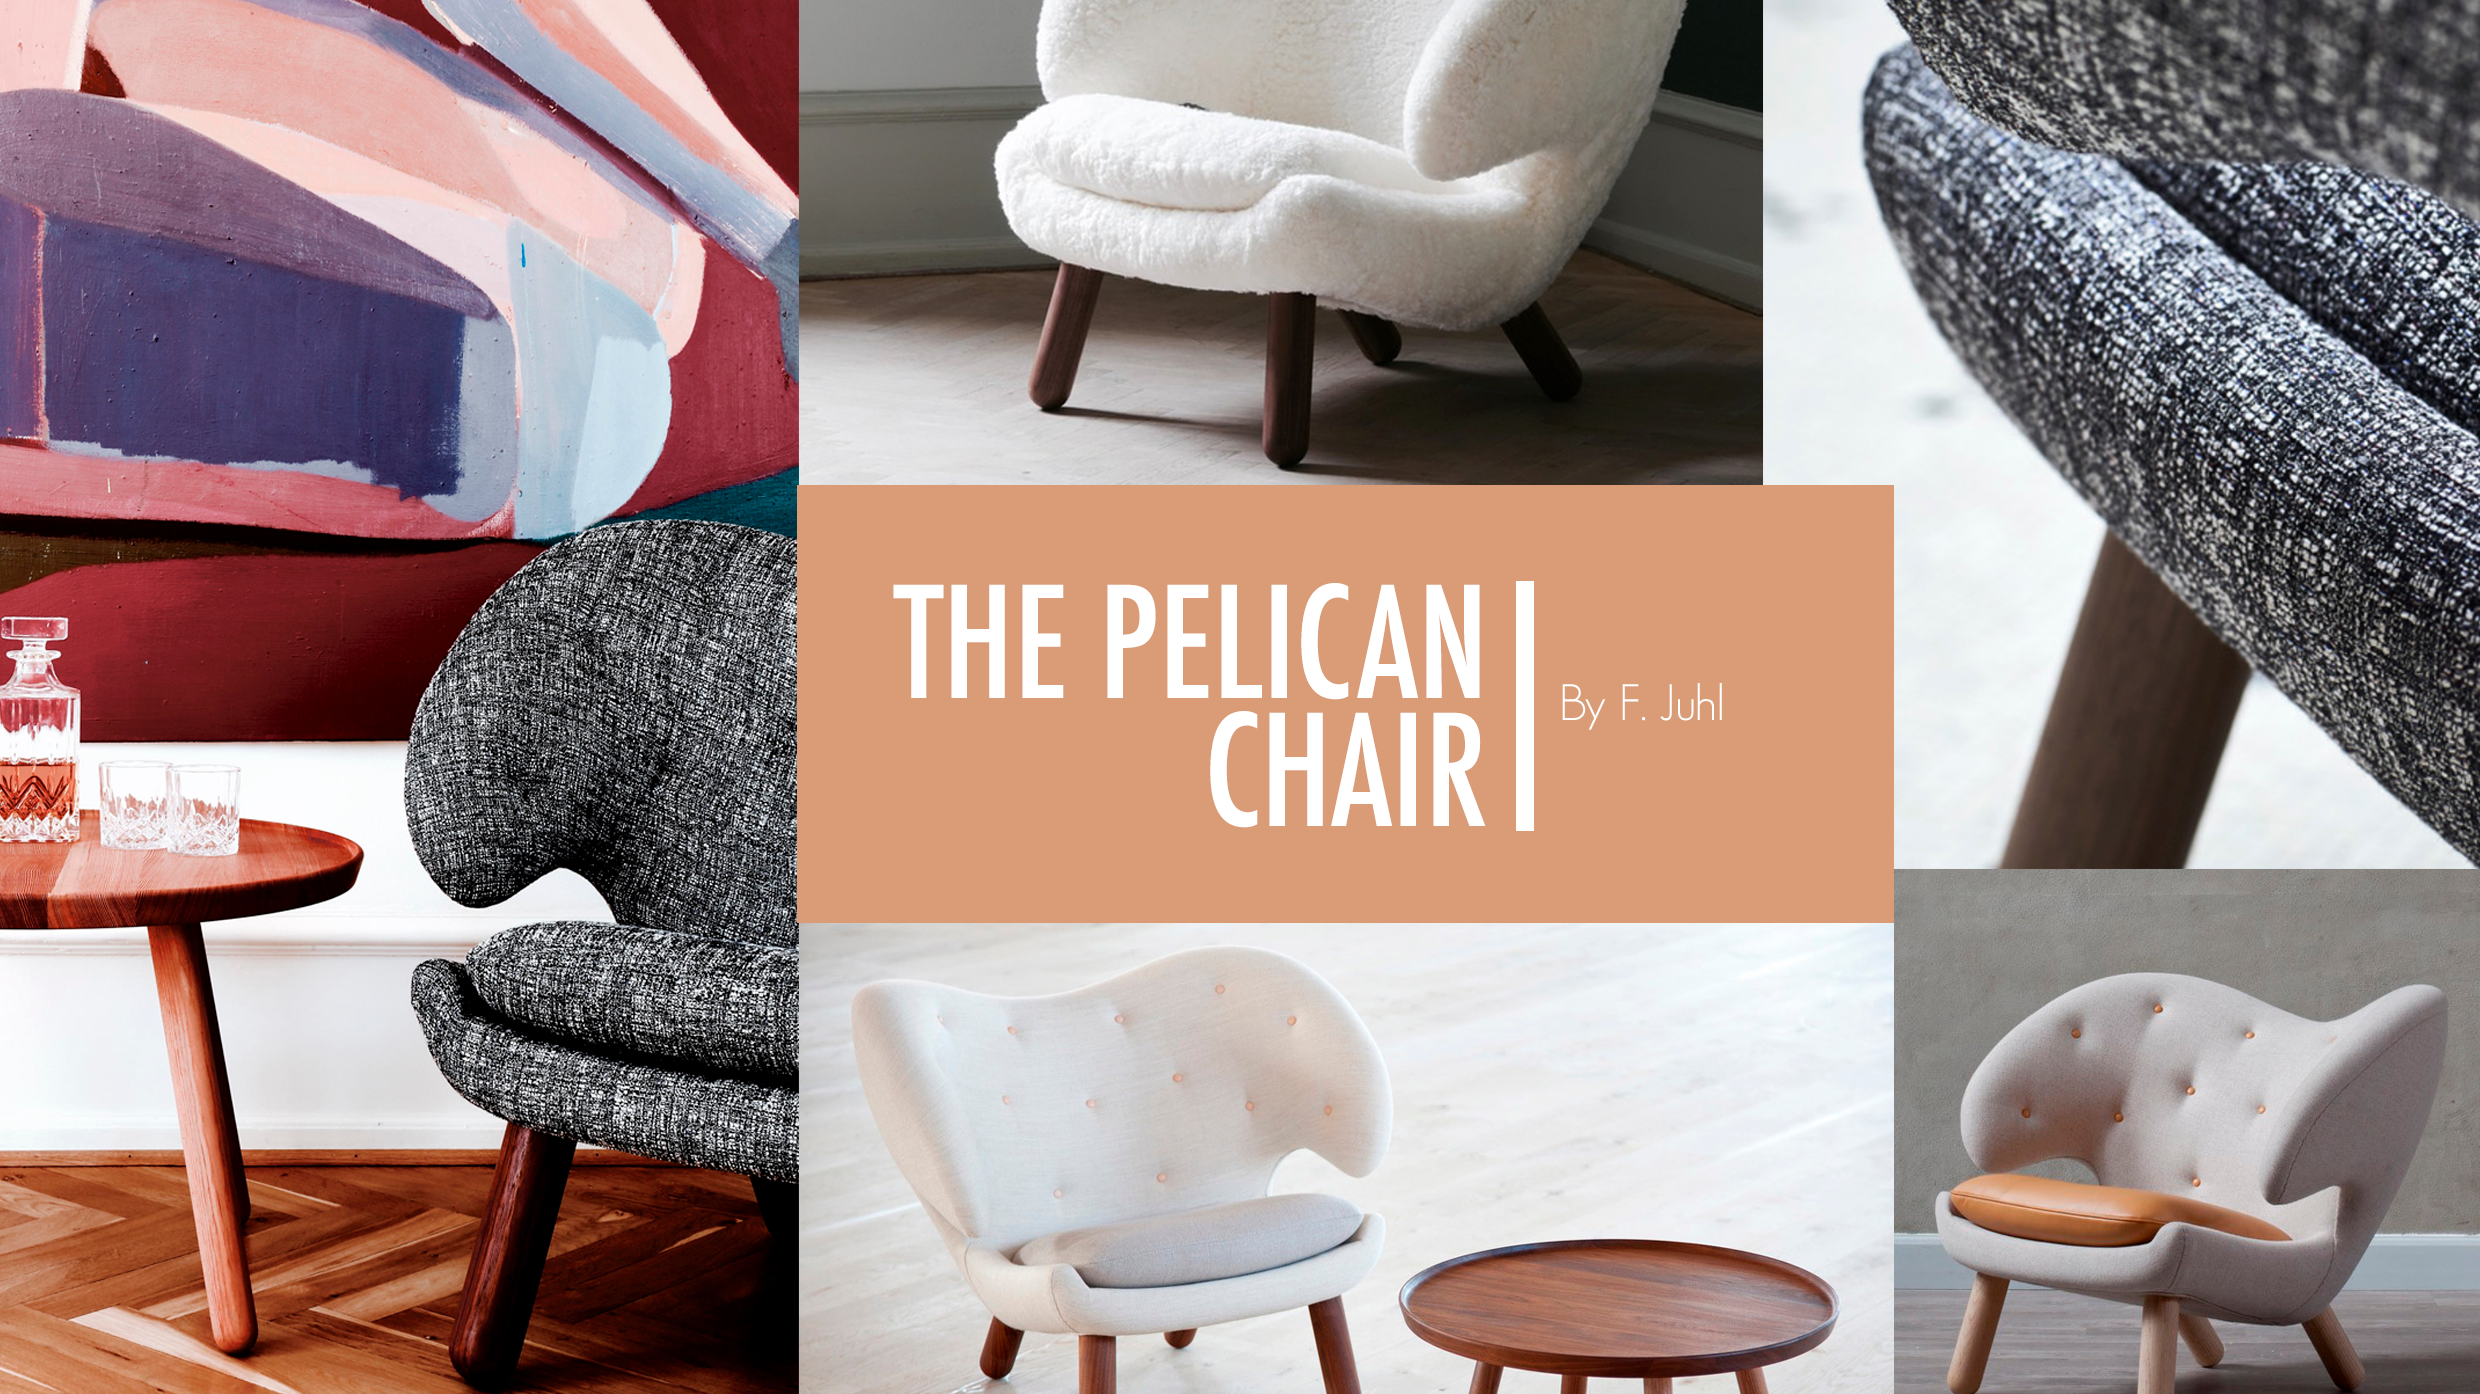 The Pelican Chair by Juhl